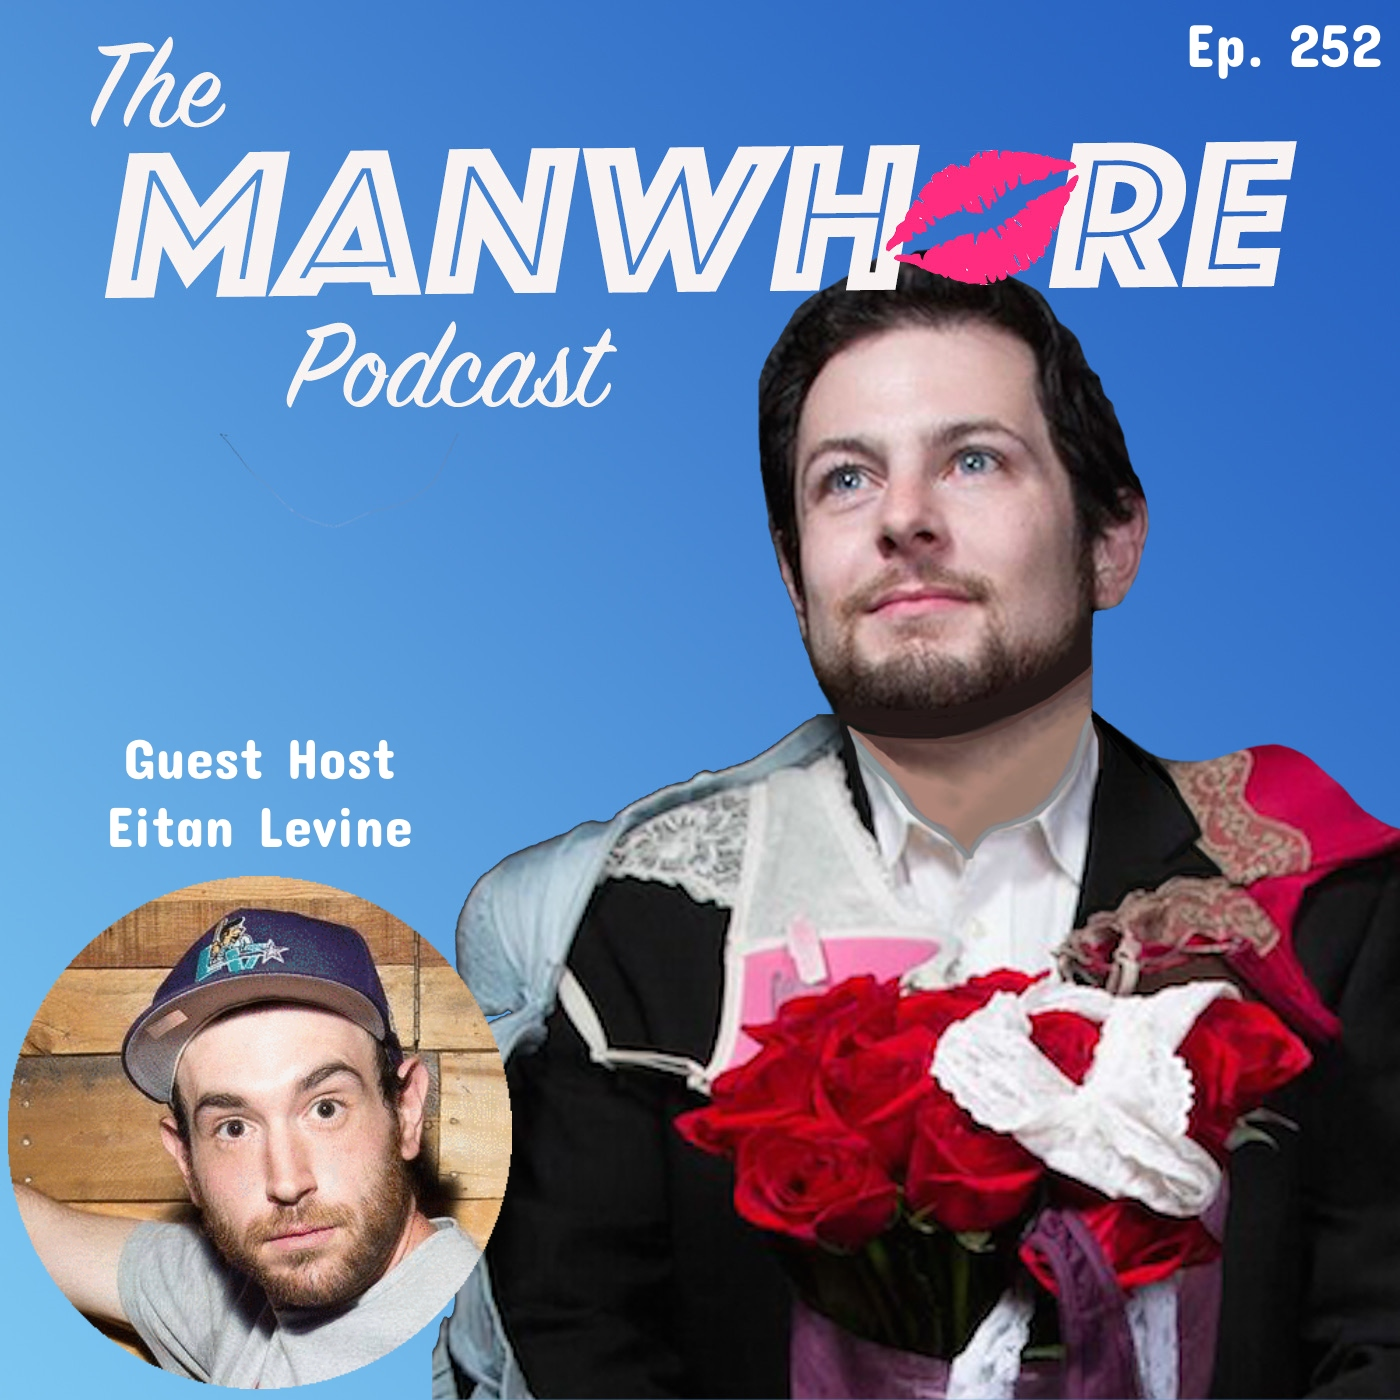 The Manwhore Podcast: A Sex-Positive Quest - Ep. 252: How to Mix Cake and Cunnilingus // AVN Debrief with Eitan Levine